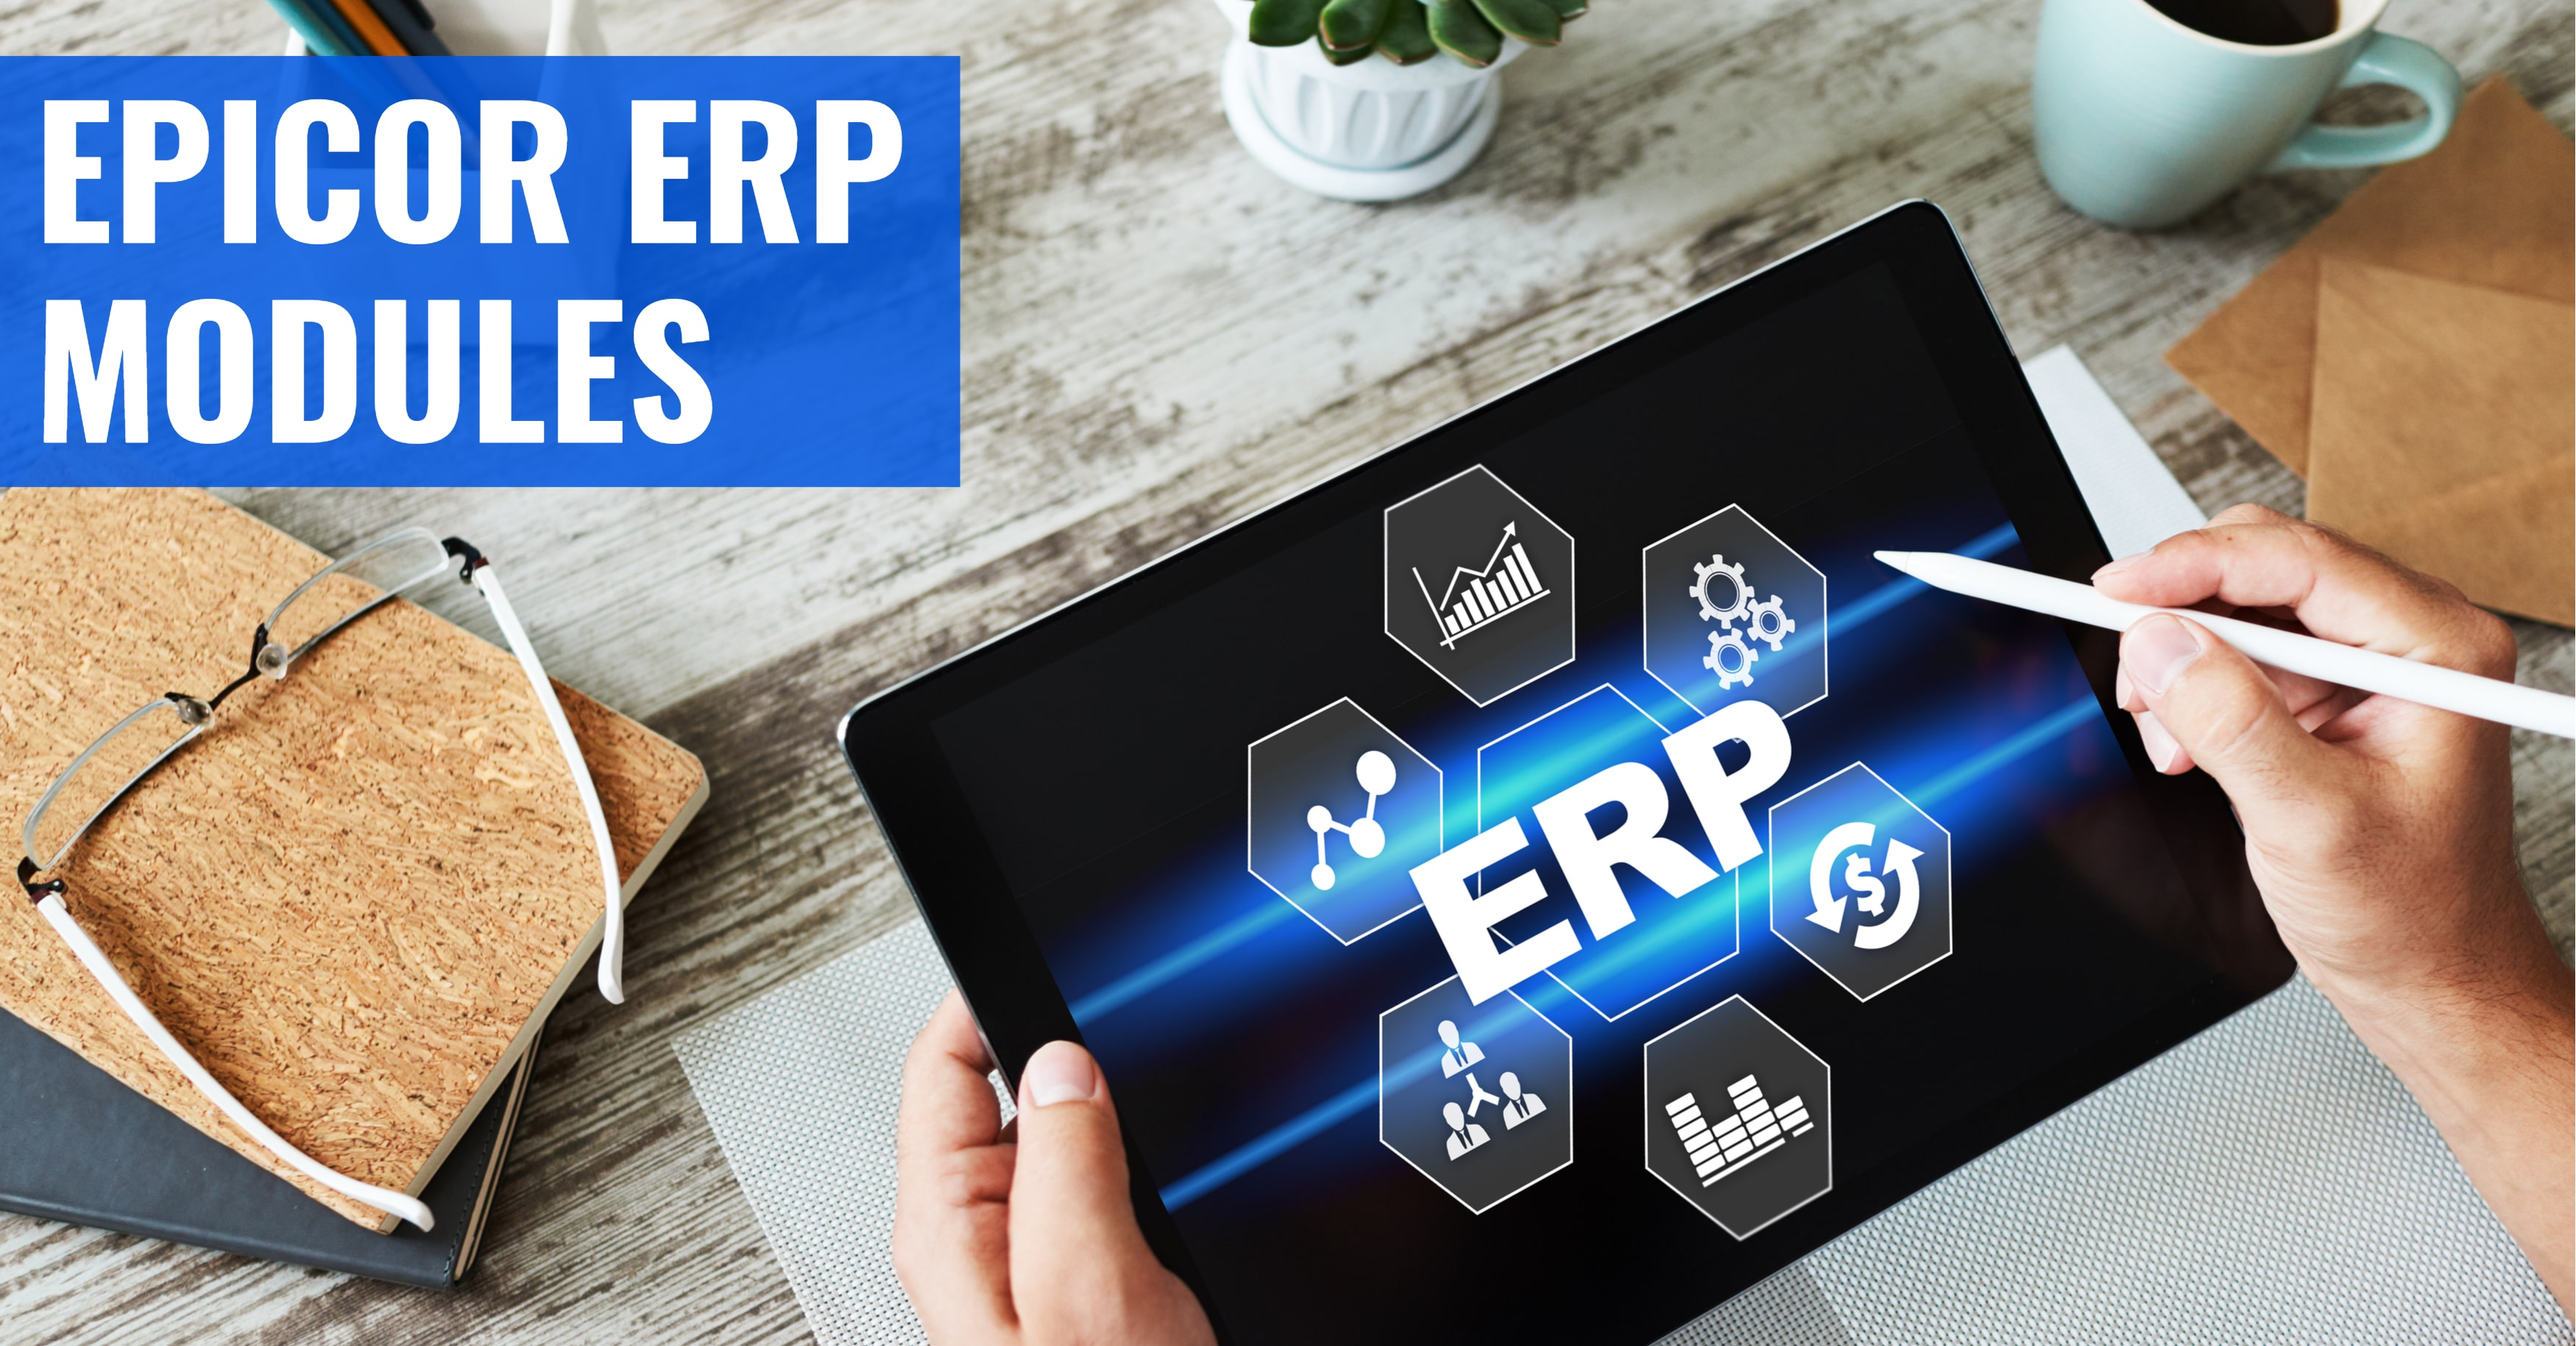 Overview of Epicor ERP Modules